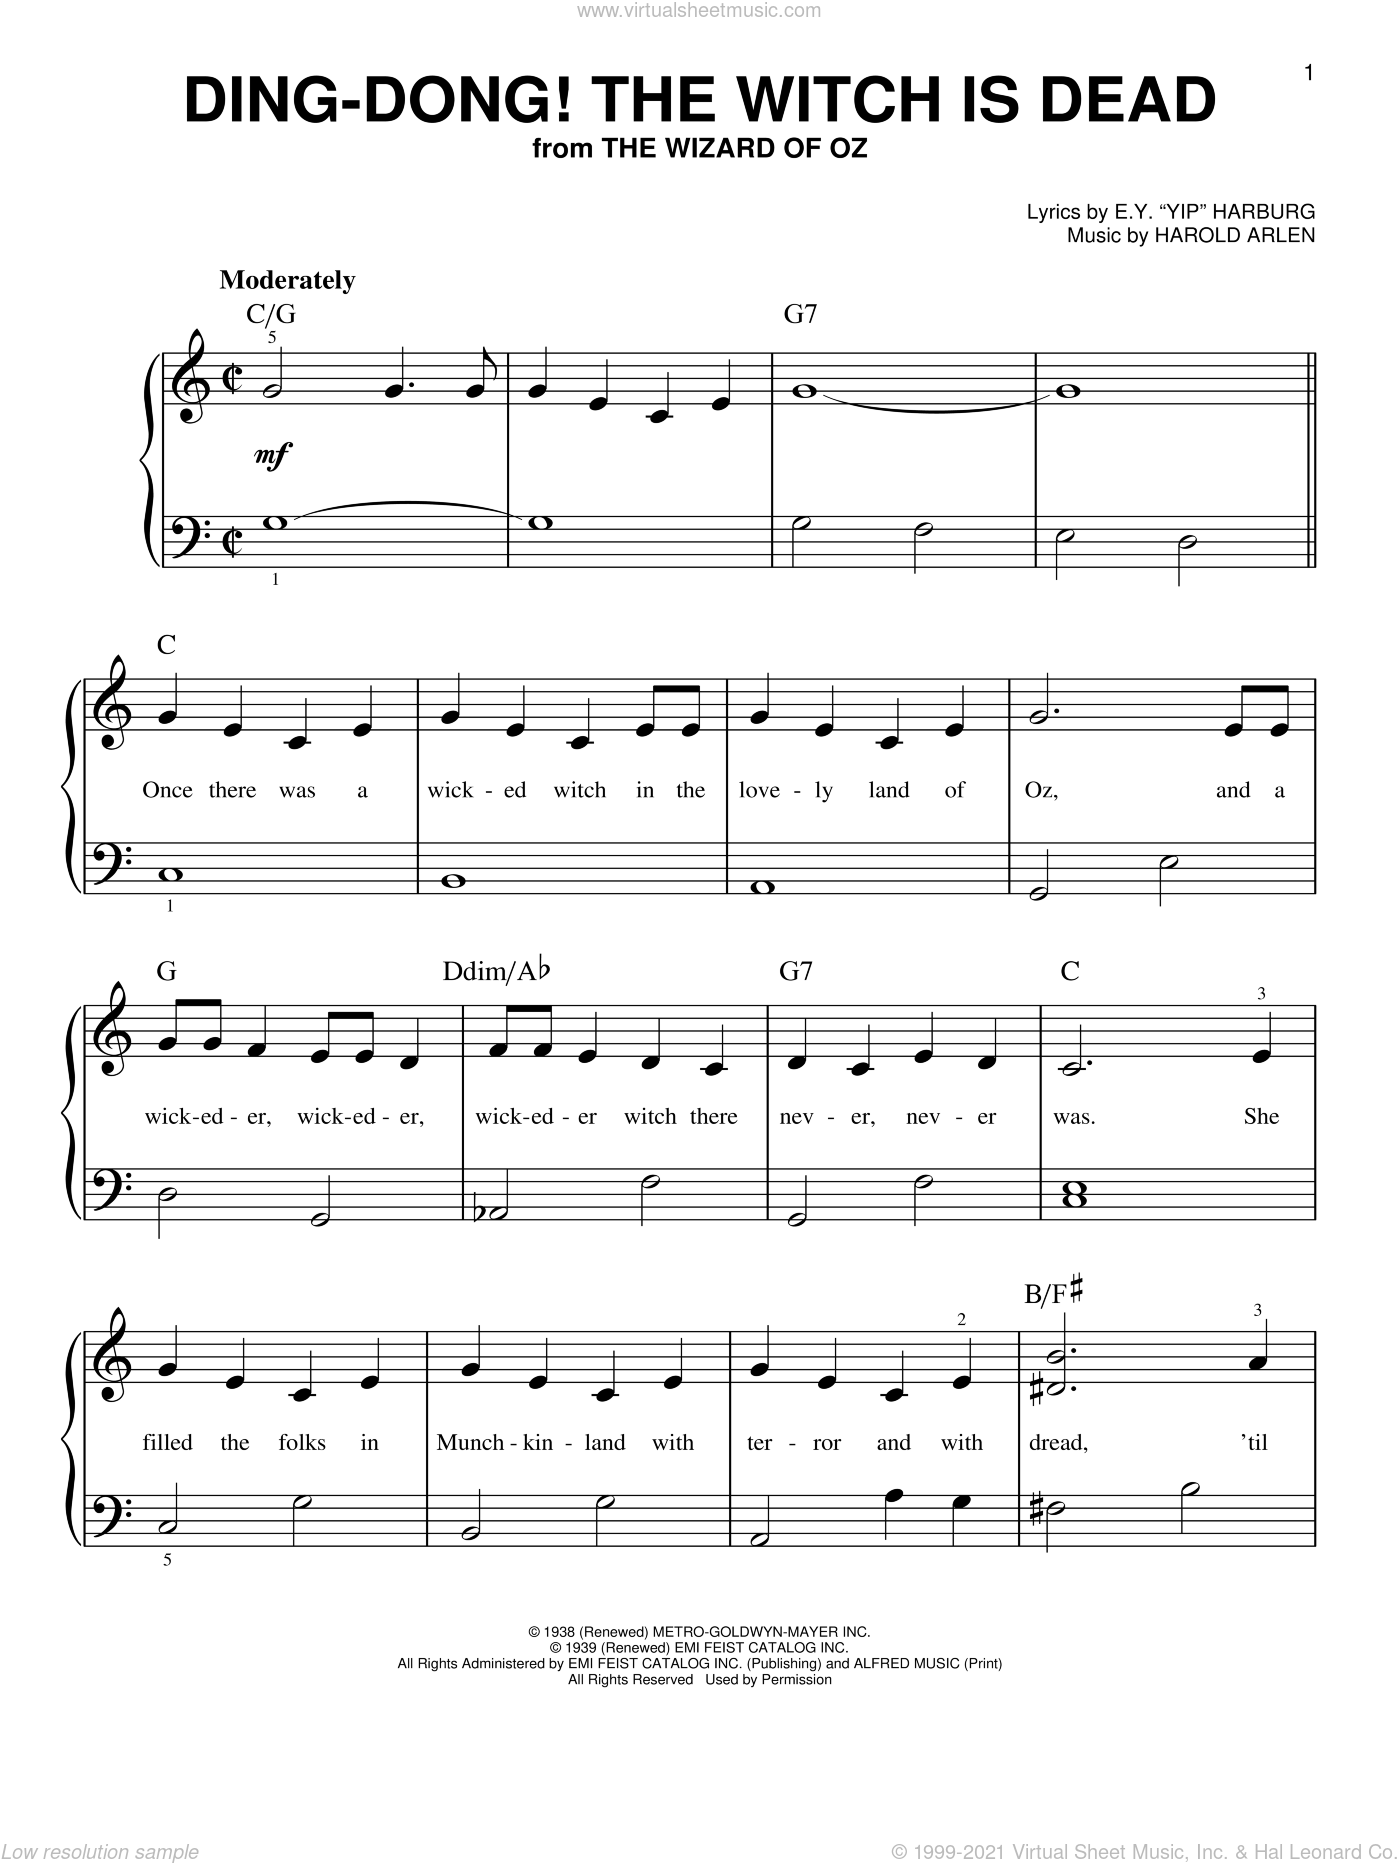 Ding-Dong! The Witch Is Dead sheet music for piano solo (chords) by Harold Arlen